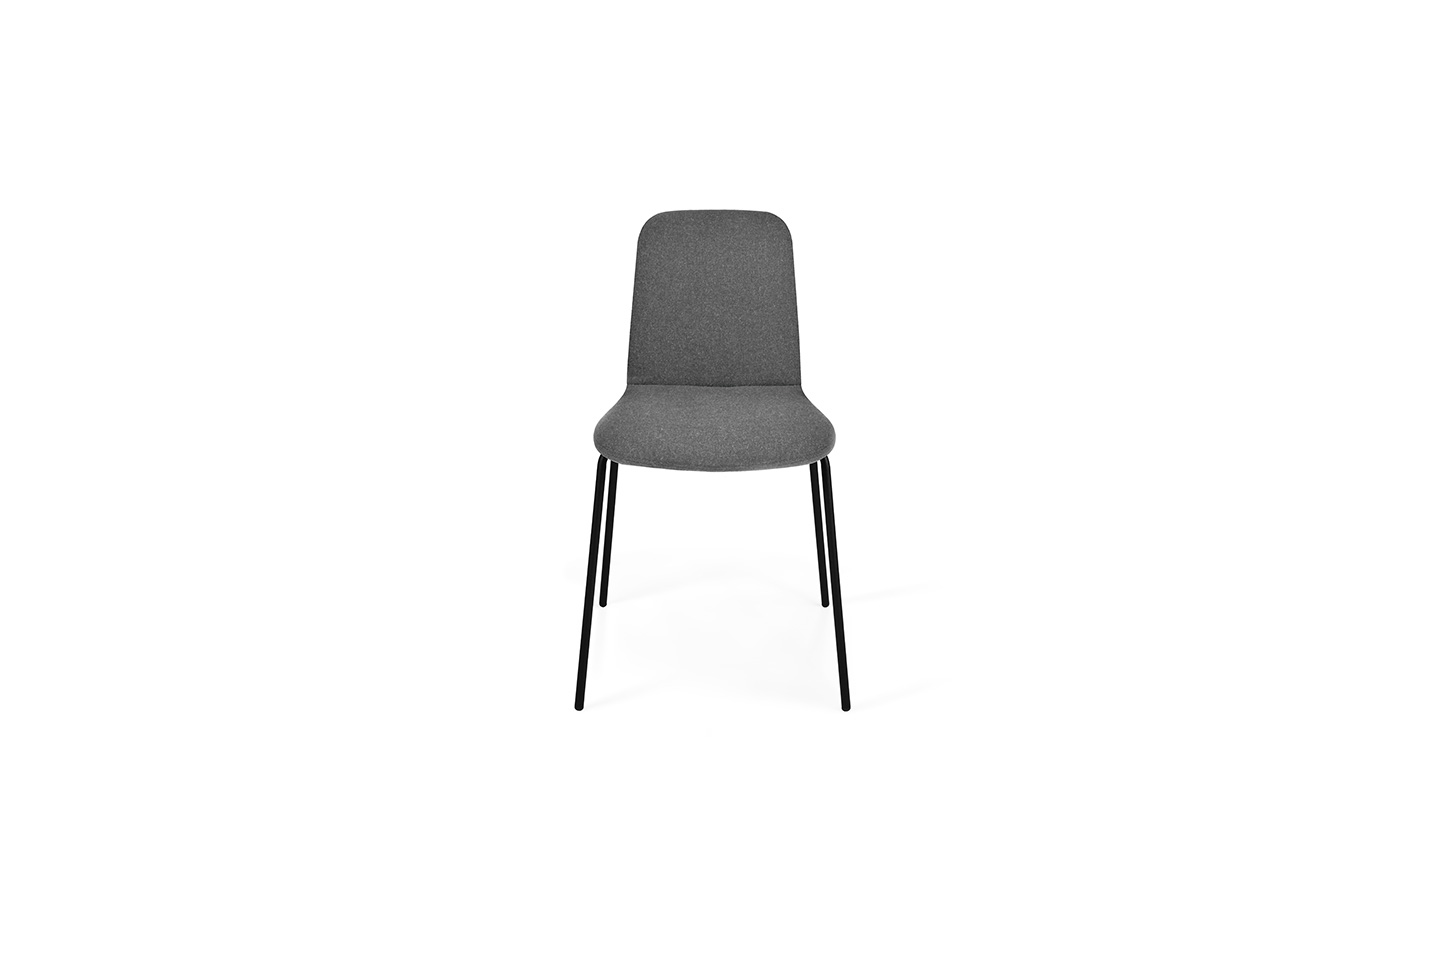 THIN Chair - Steel Base - Upholstered